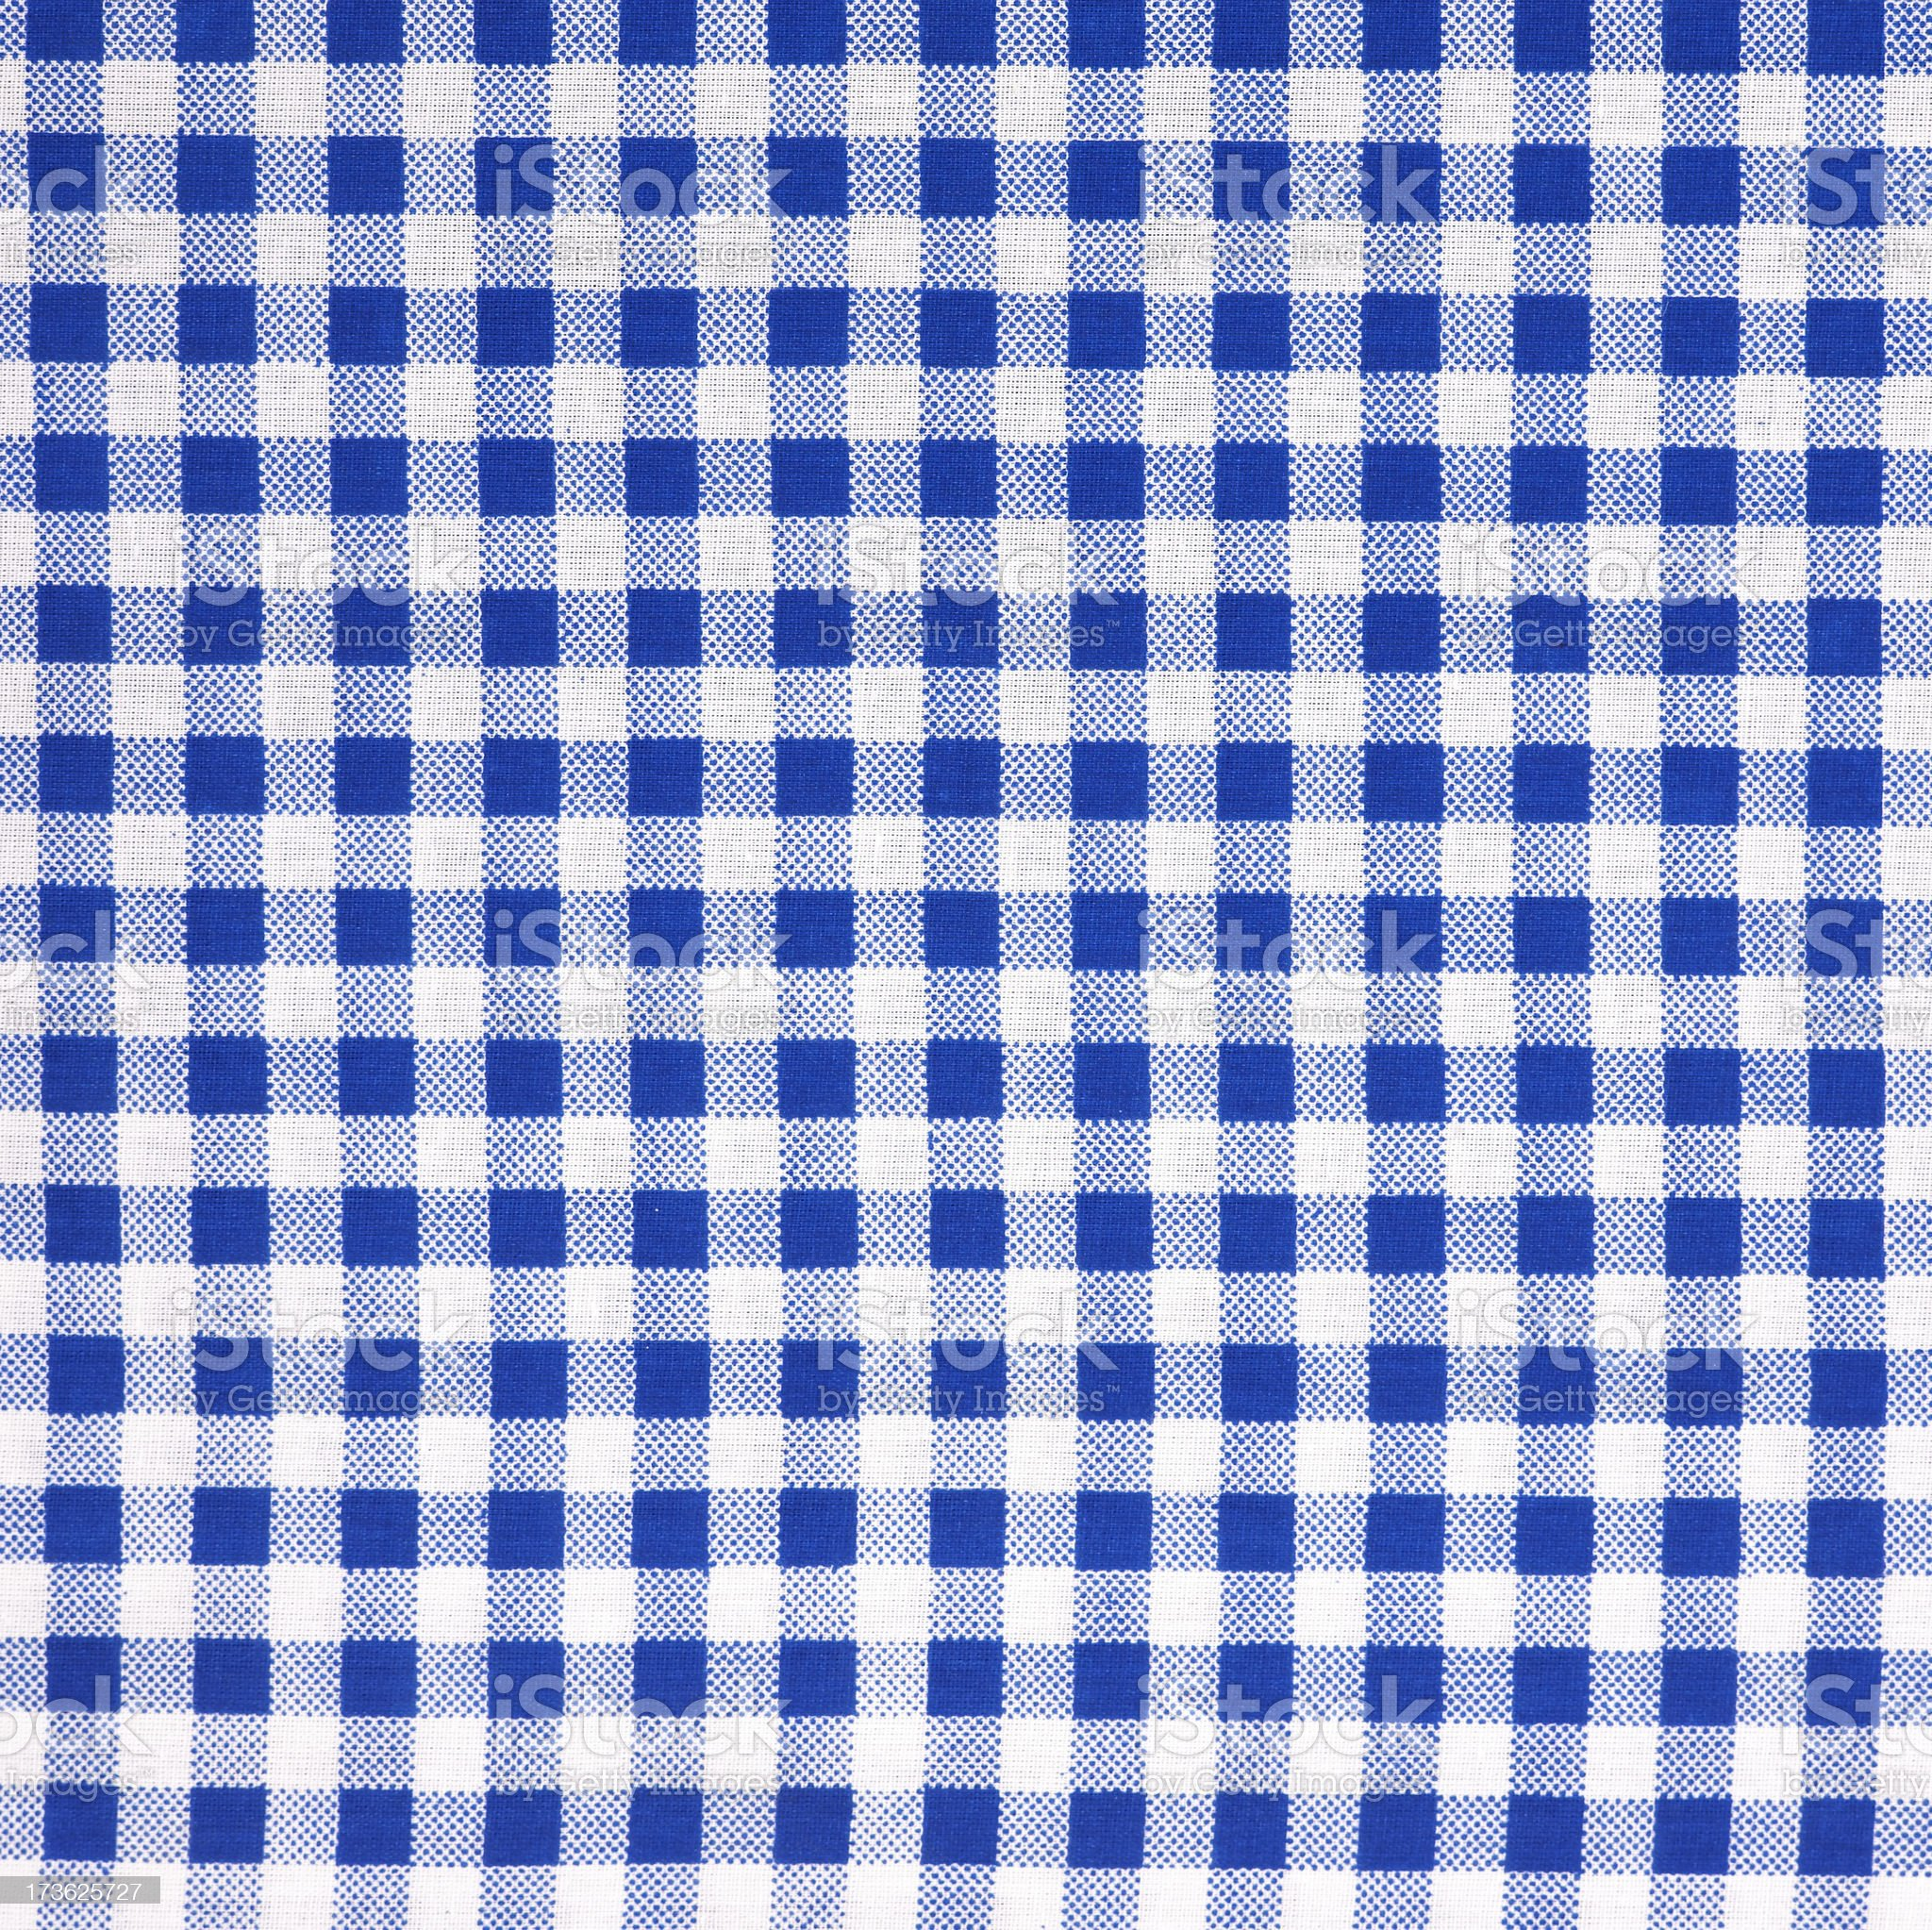 Checked tablecloth royalty-free stock photo